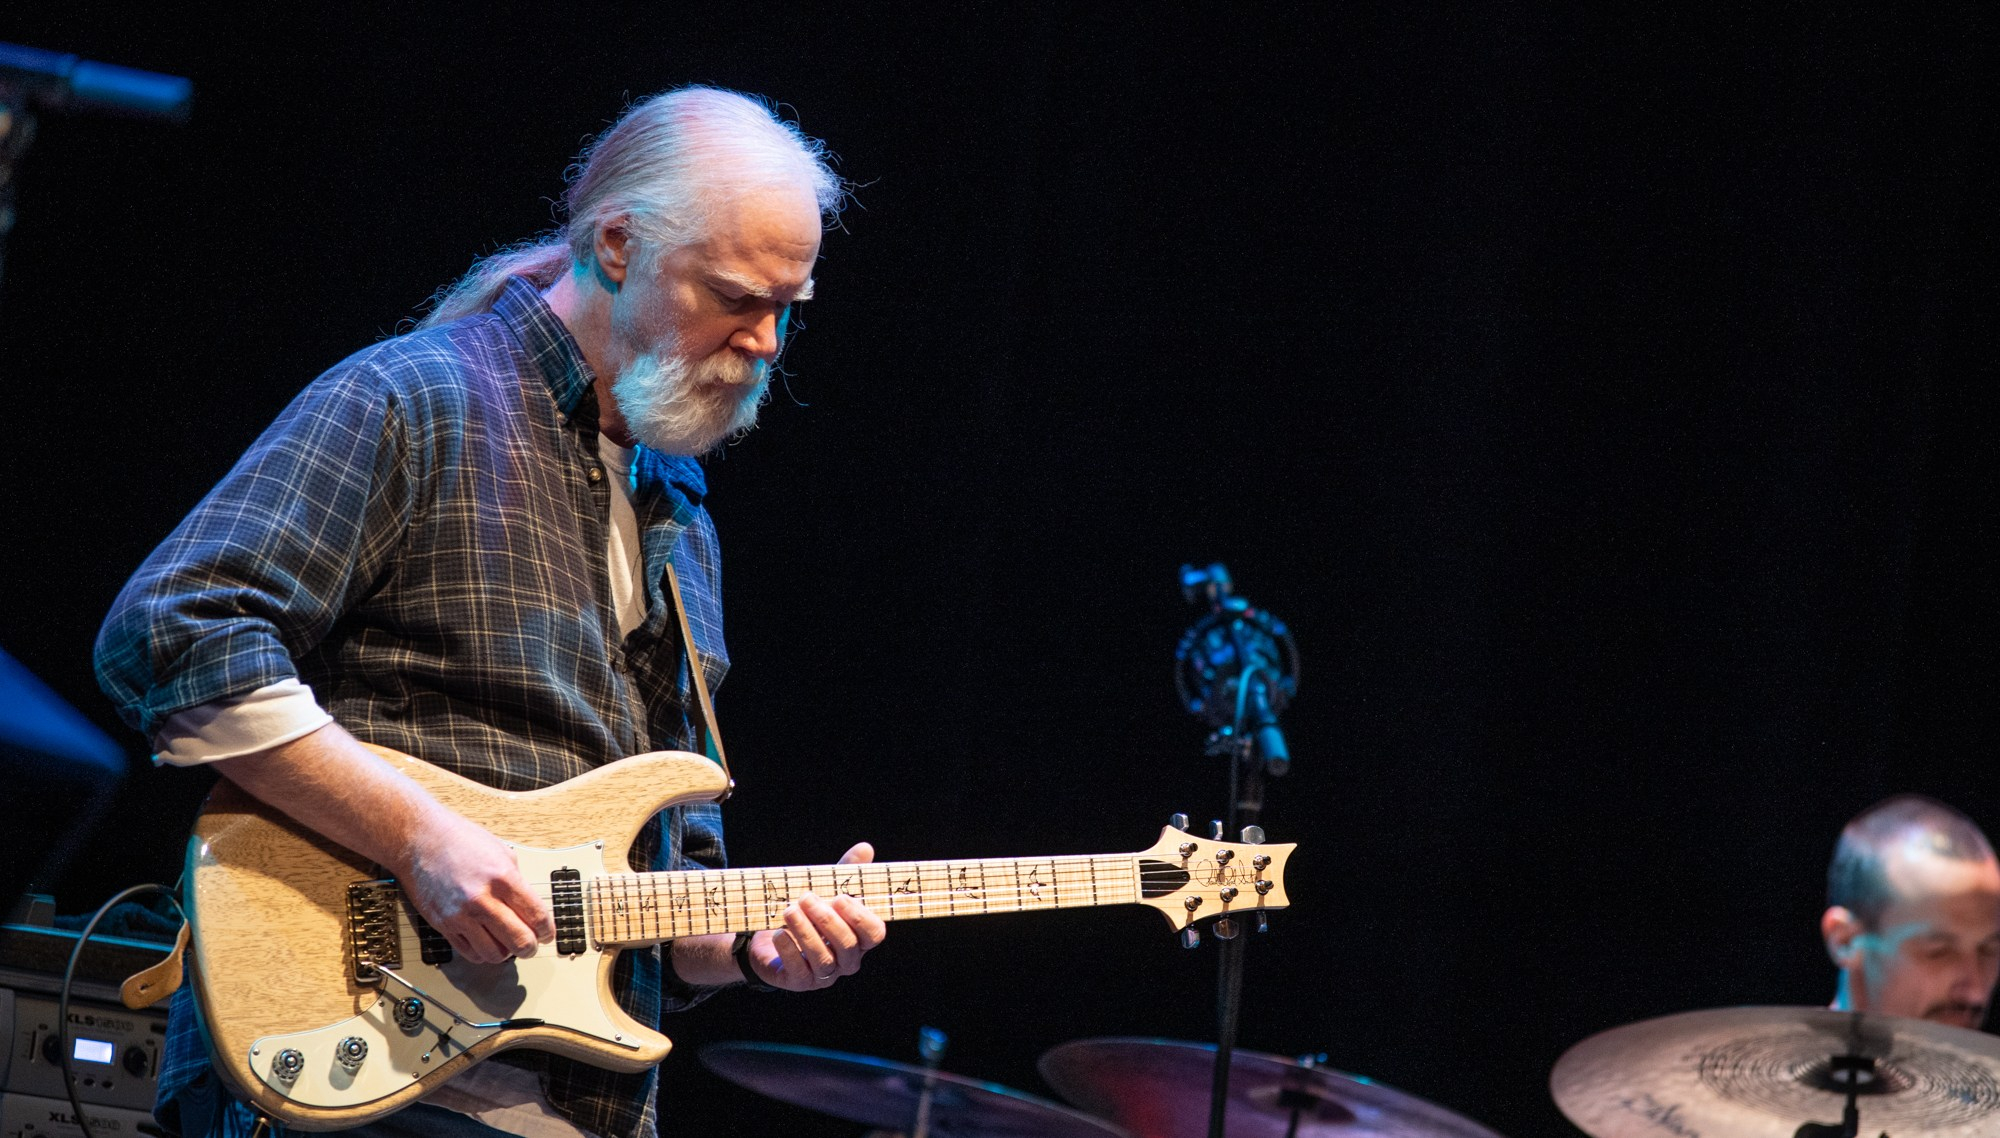 GALLERY: Jimmy Herring and The 5 of 7